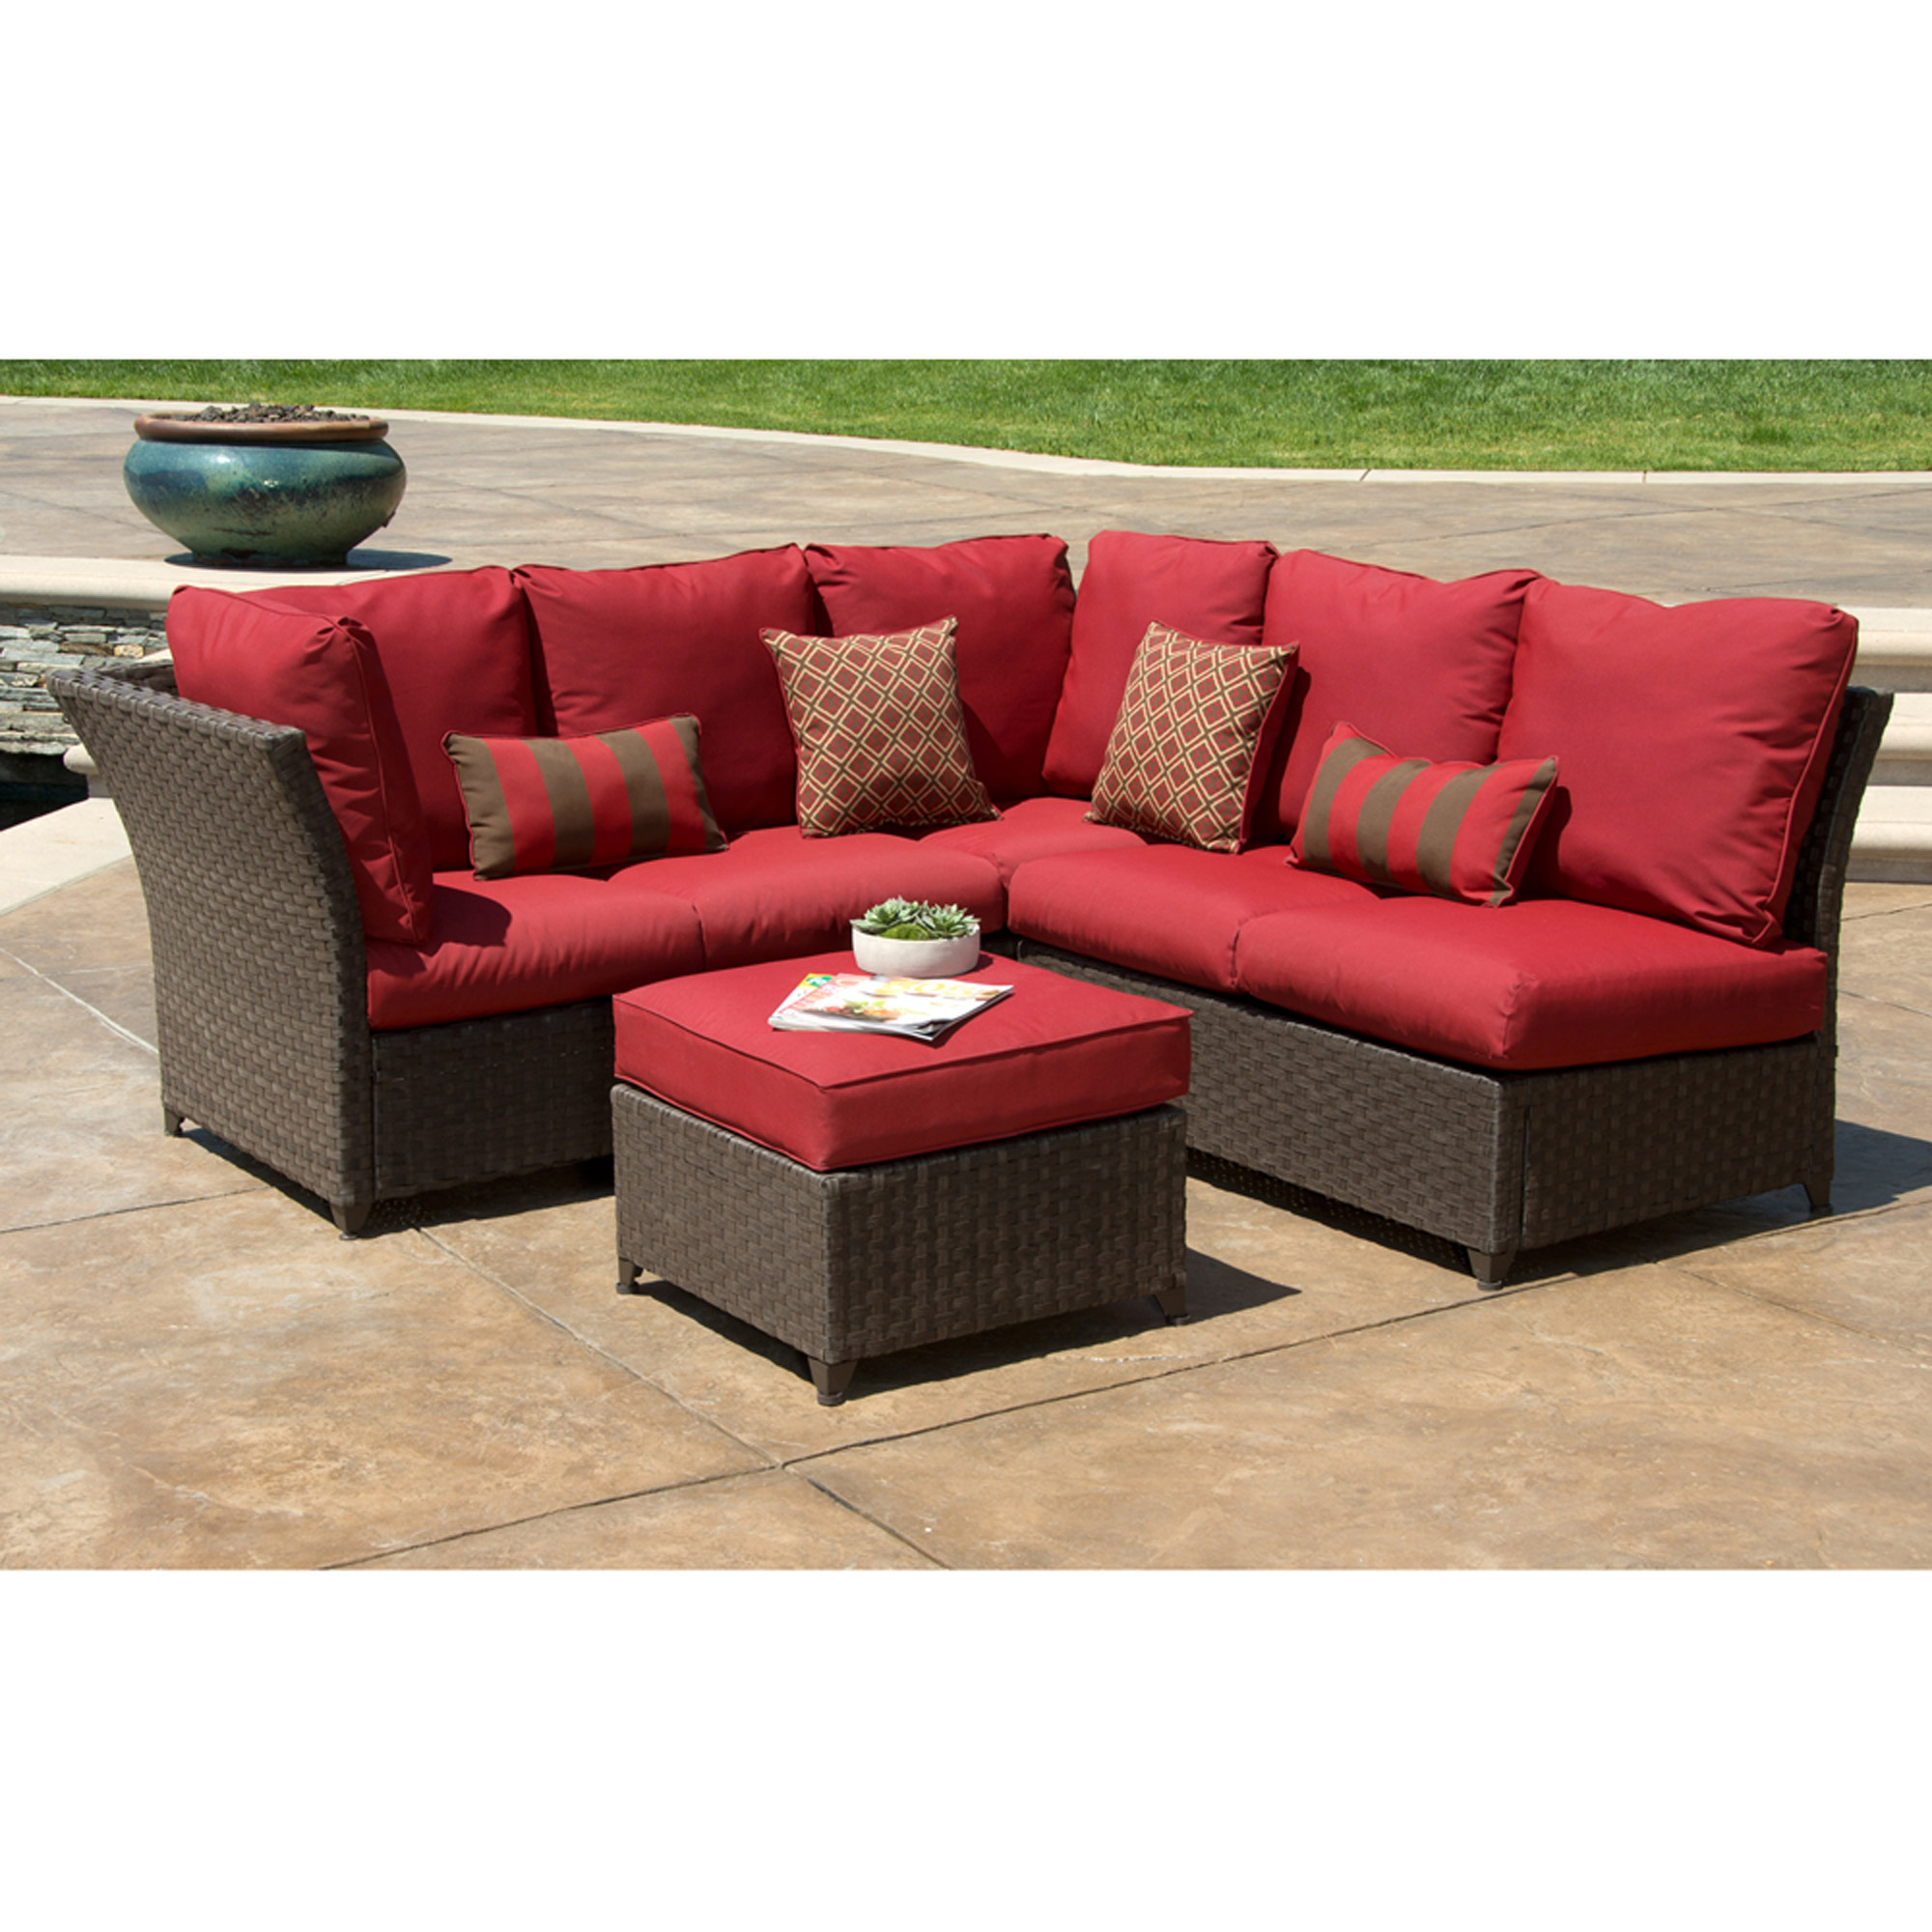 better homes and gardens rushreed 3 piece outdoor sectional sofa set